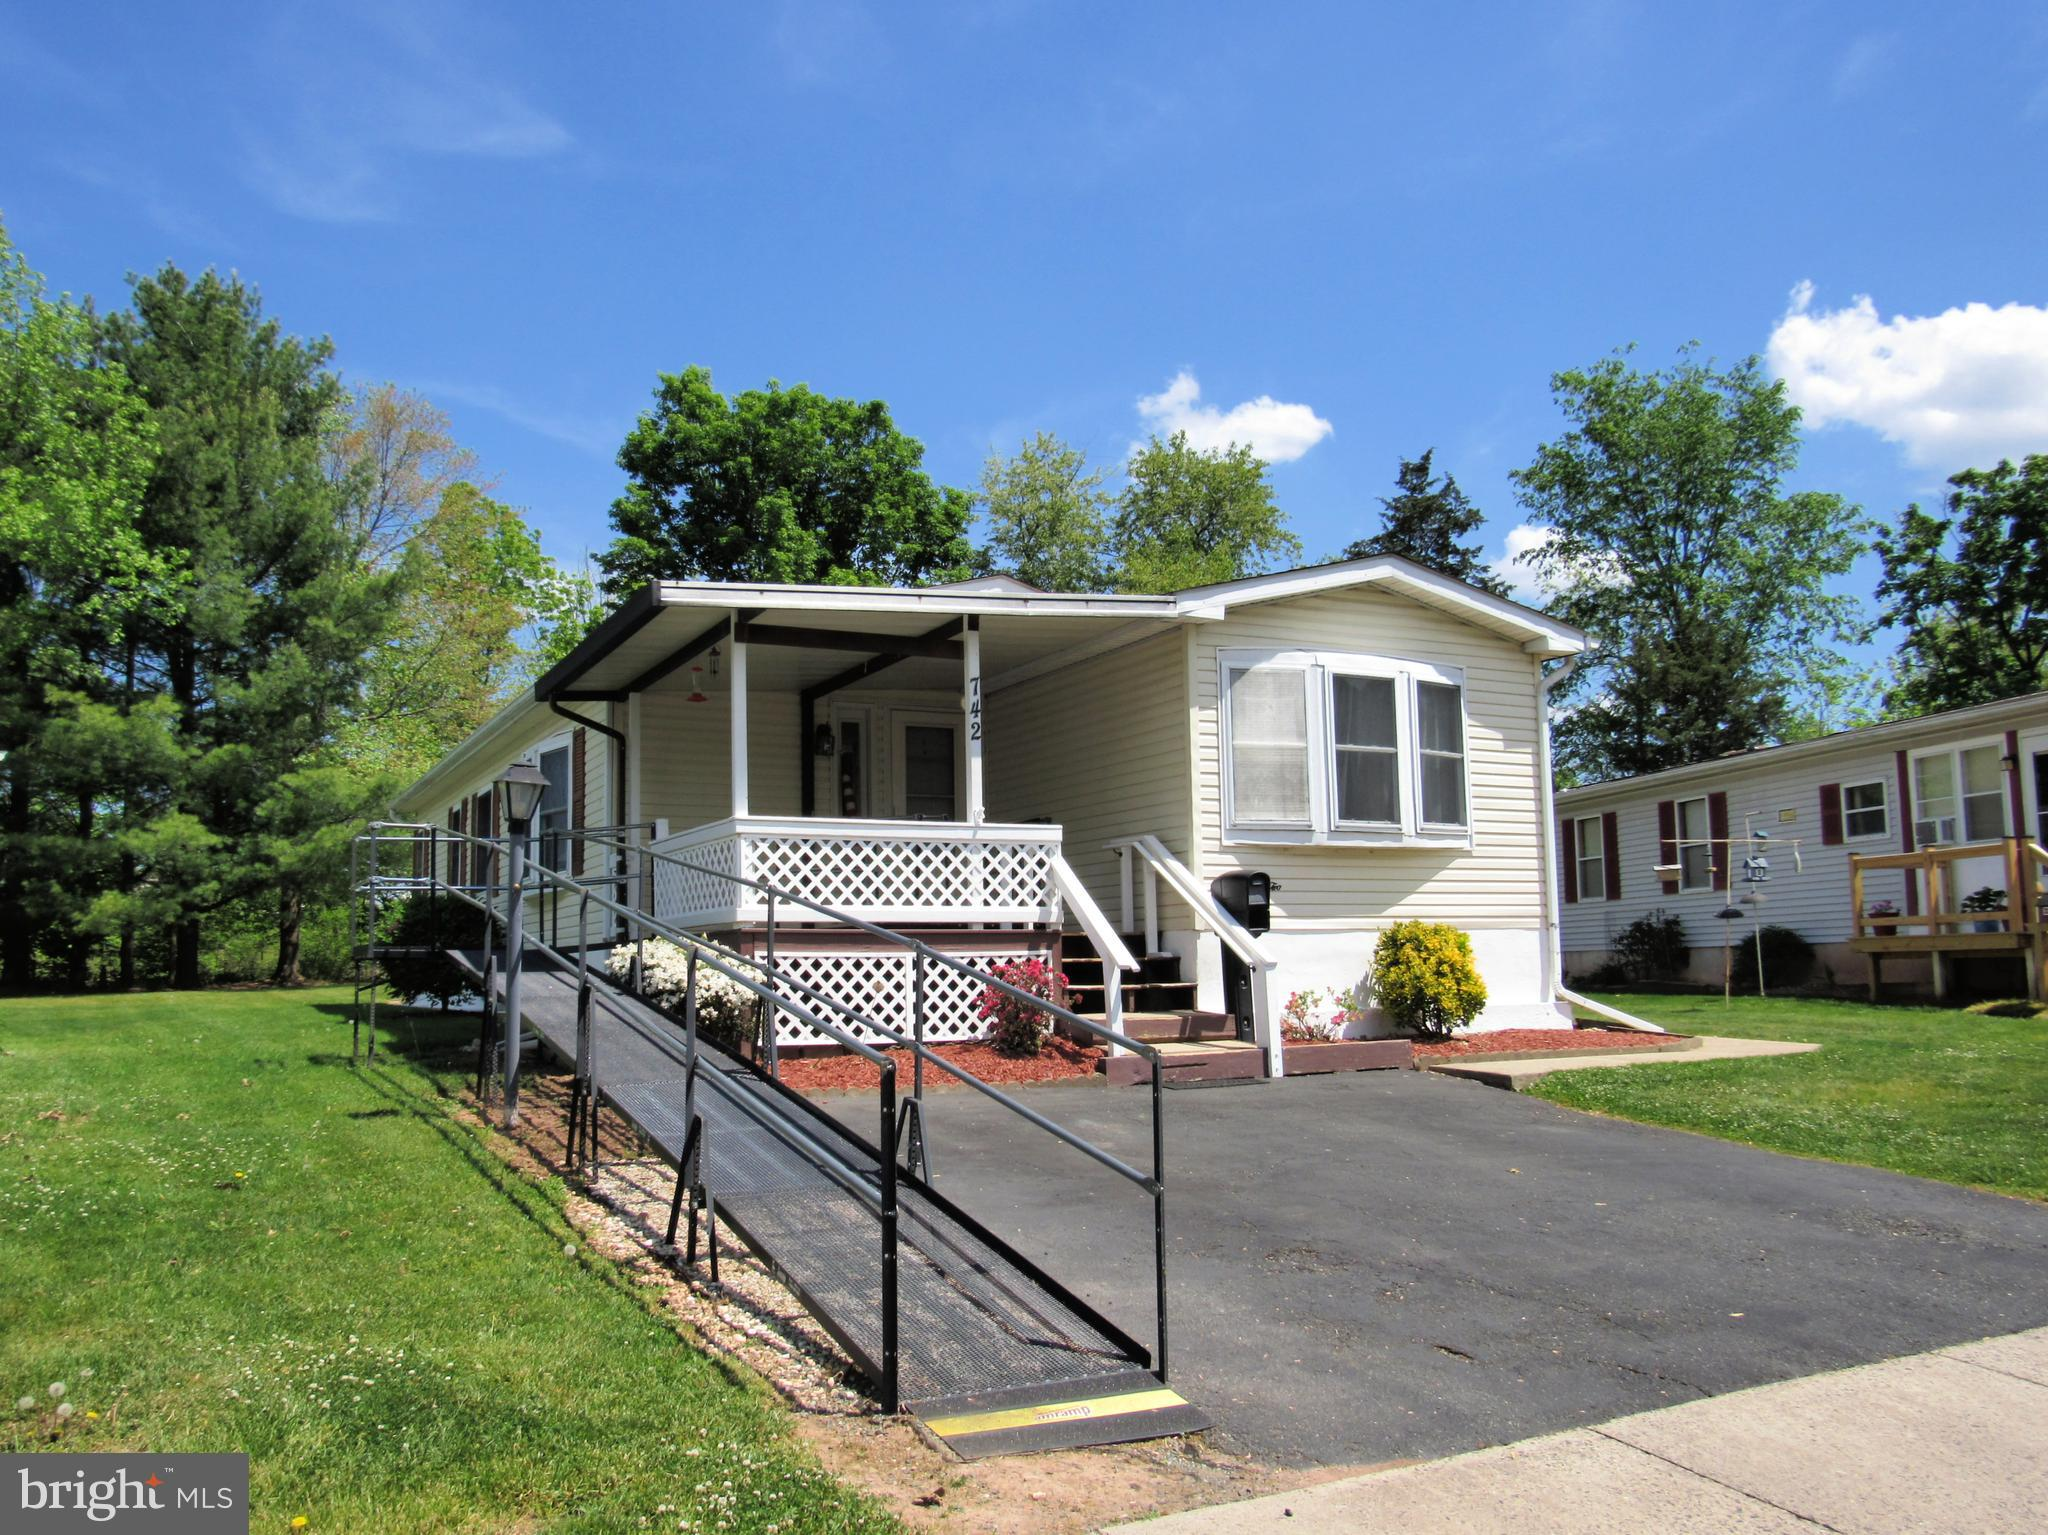 You'll love the setting of this home with large back yard and tree buffer.   Home is in very good condition with new roof 4/21, heat pump and hot water heater installed 2019, newer carpet and replacement windows.  Spacious main bedroom suite with walk-in closet and large bath with walk in shower.  There is a front porch, side deck and rear deck to enjoy peaceful backyard.  Conveniently located close to shopping, main routes of travel and Montgomery County park system.